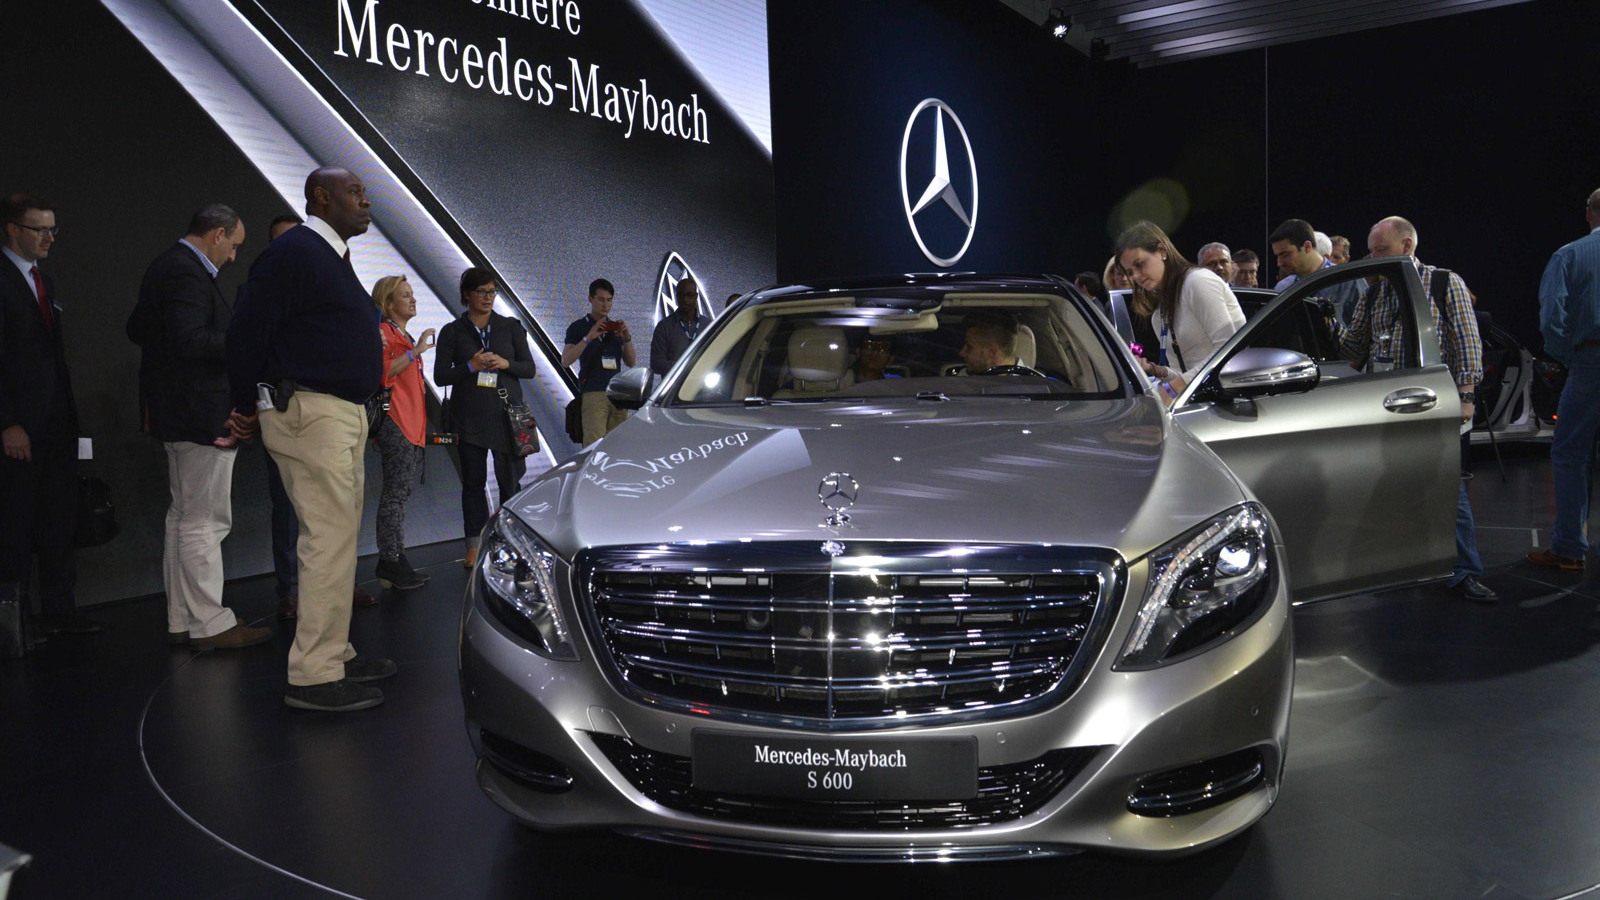 2016 Mercedes-Maybach S-Class, 2014 Los Angeles Auto Show